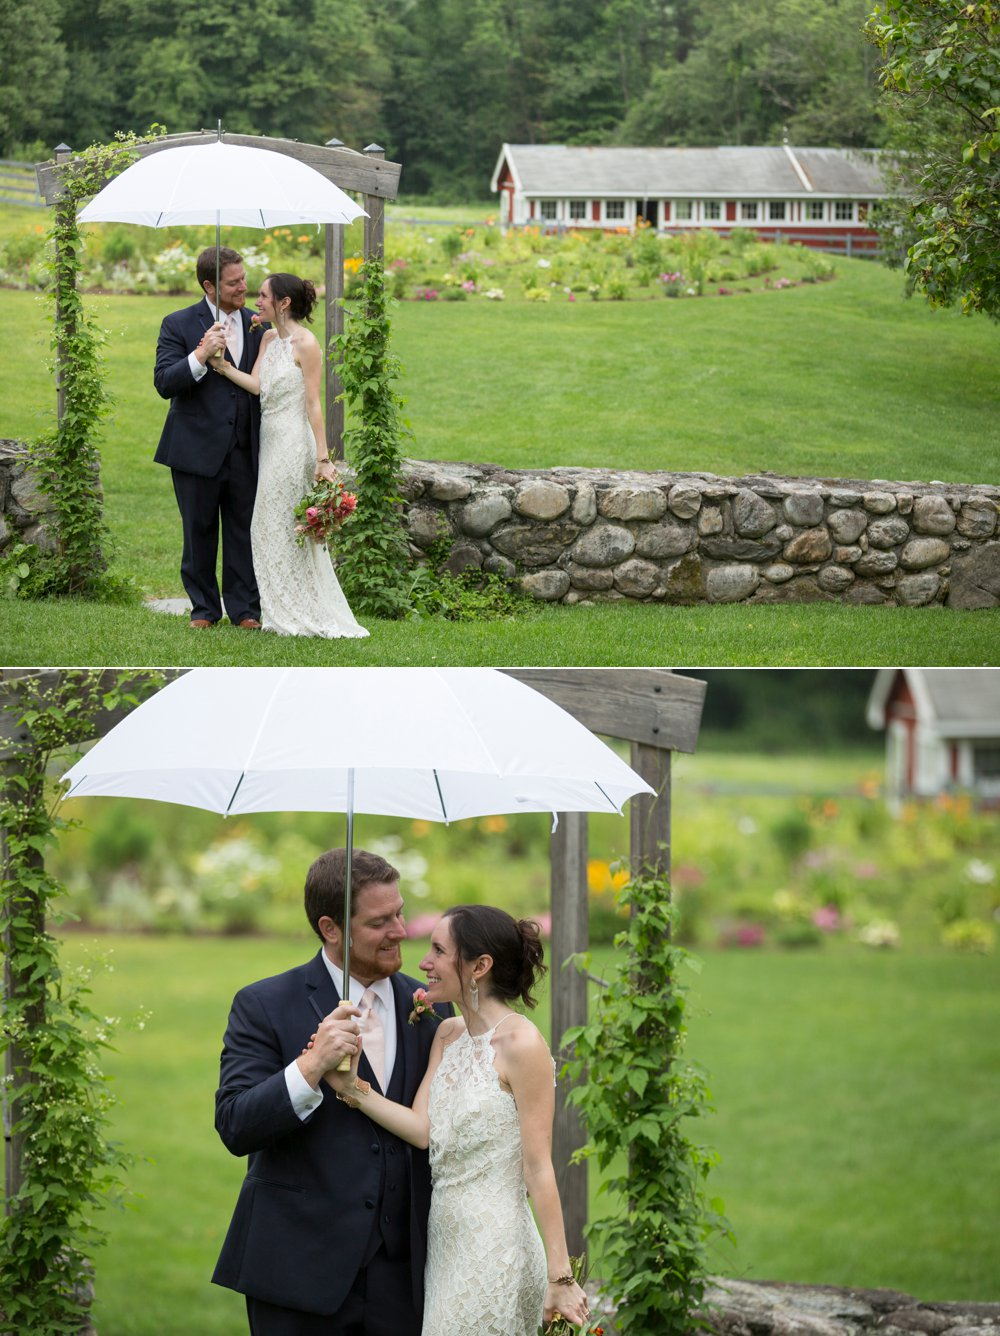 SomerbyJonesPhotography_WestMountainInnWedding_WestMountainInn_RusticVermontWedding_0034.jpg